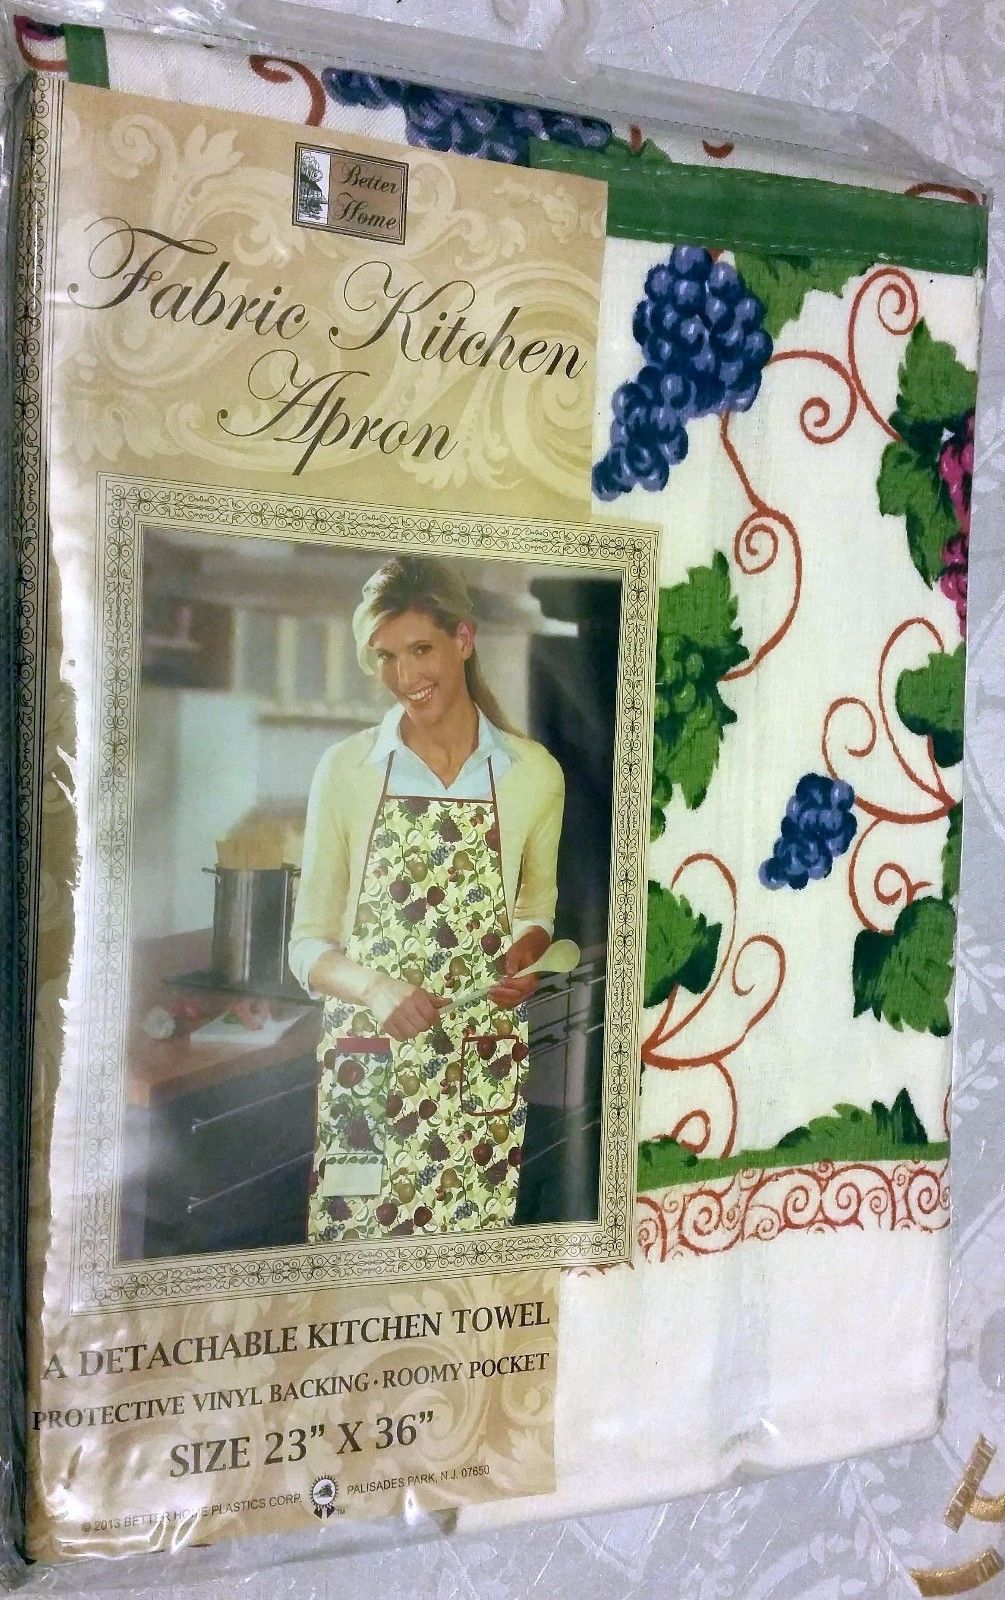 """Fabric Kitchen Apron with pocket, w/ small towel, 23"""" x 36"""", GRAPES by BH - $12.86"""